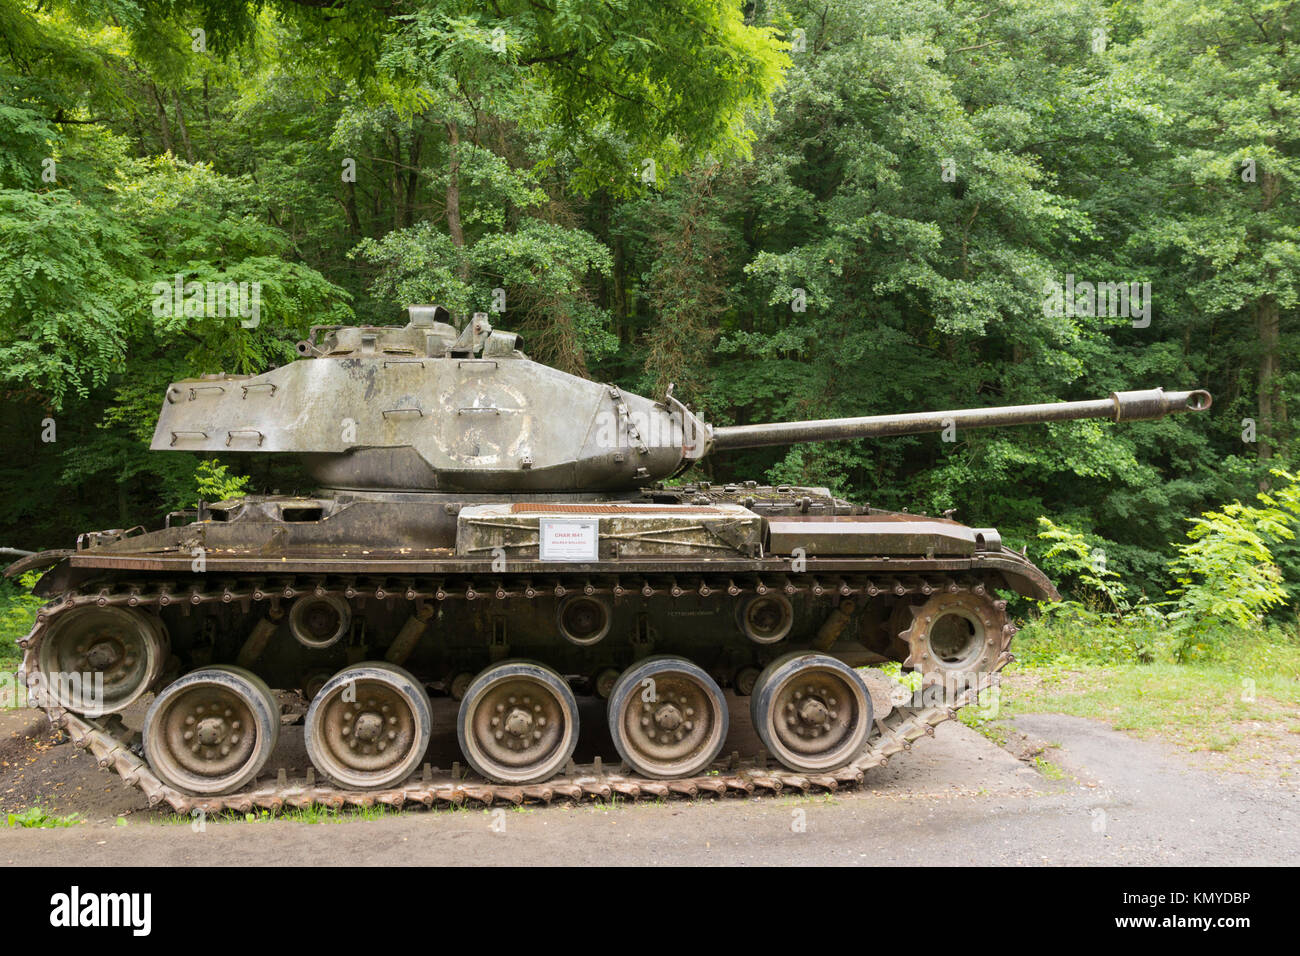 An American M41 Walker Bulldog at the Four-à-Chaux site of the Maginot Line at Lembach, Alsace - Stock Image